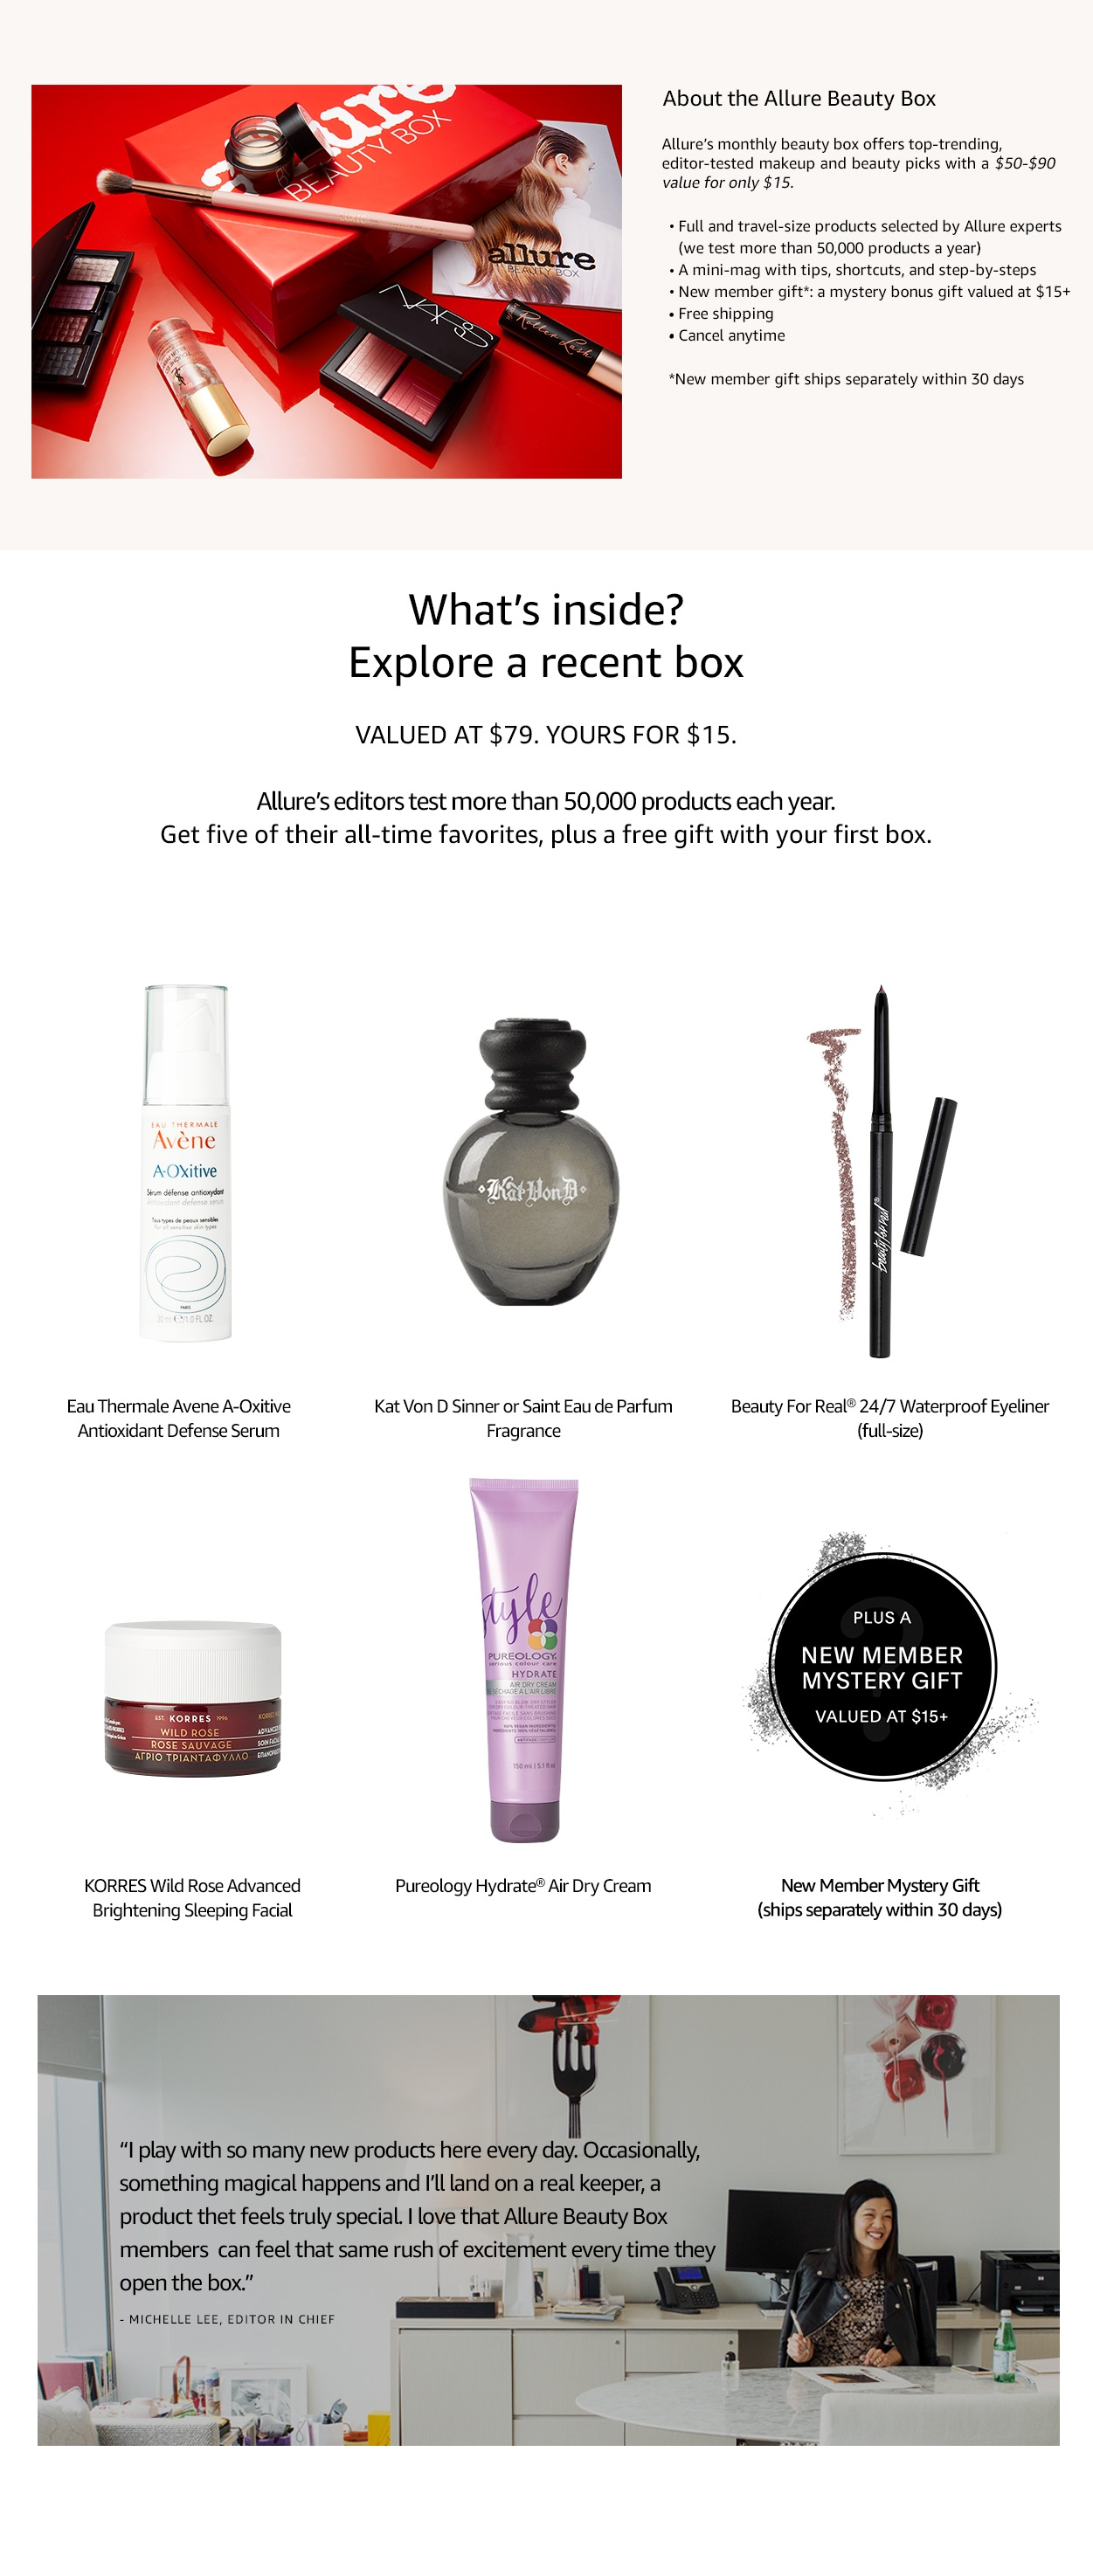 Amazon Allure Beauty Box Memberships and Subscriptions